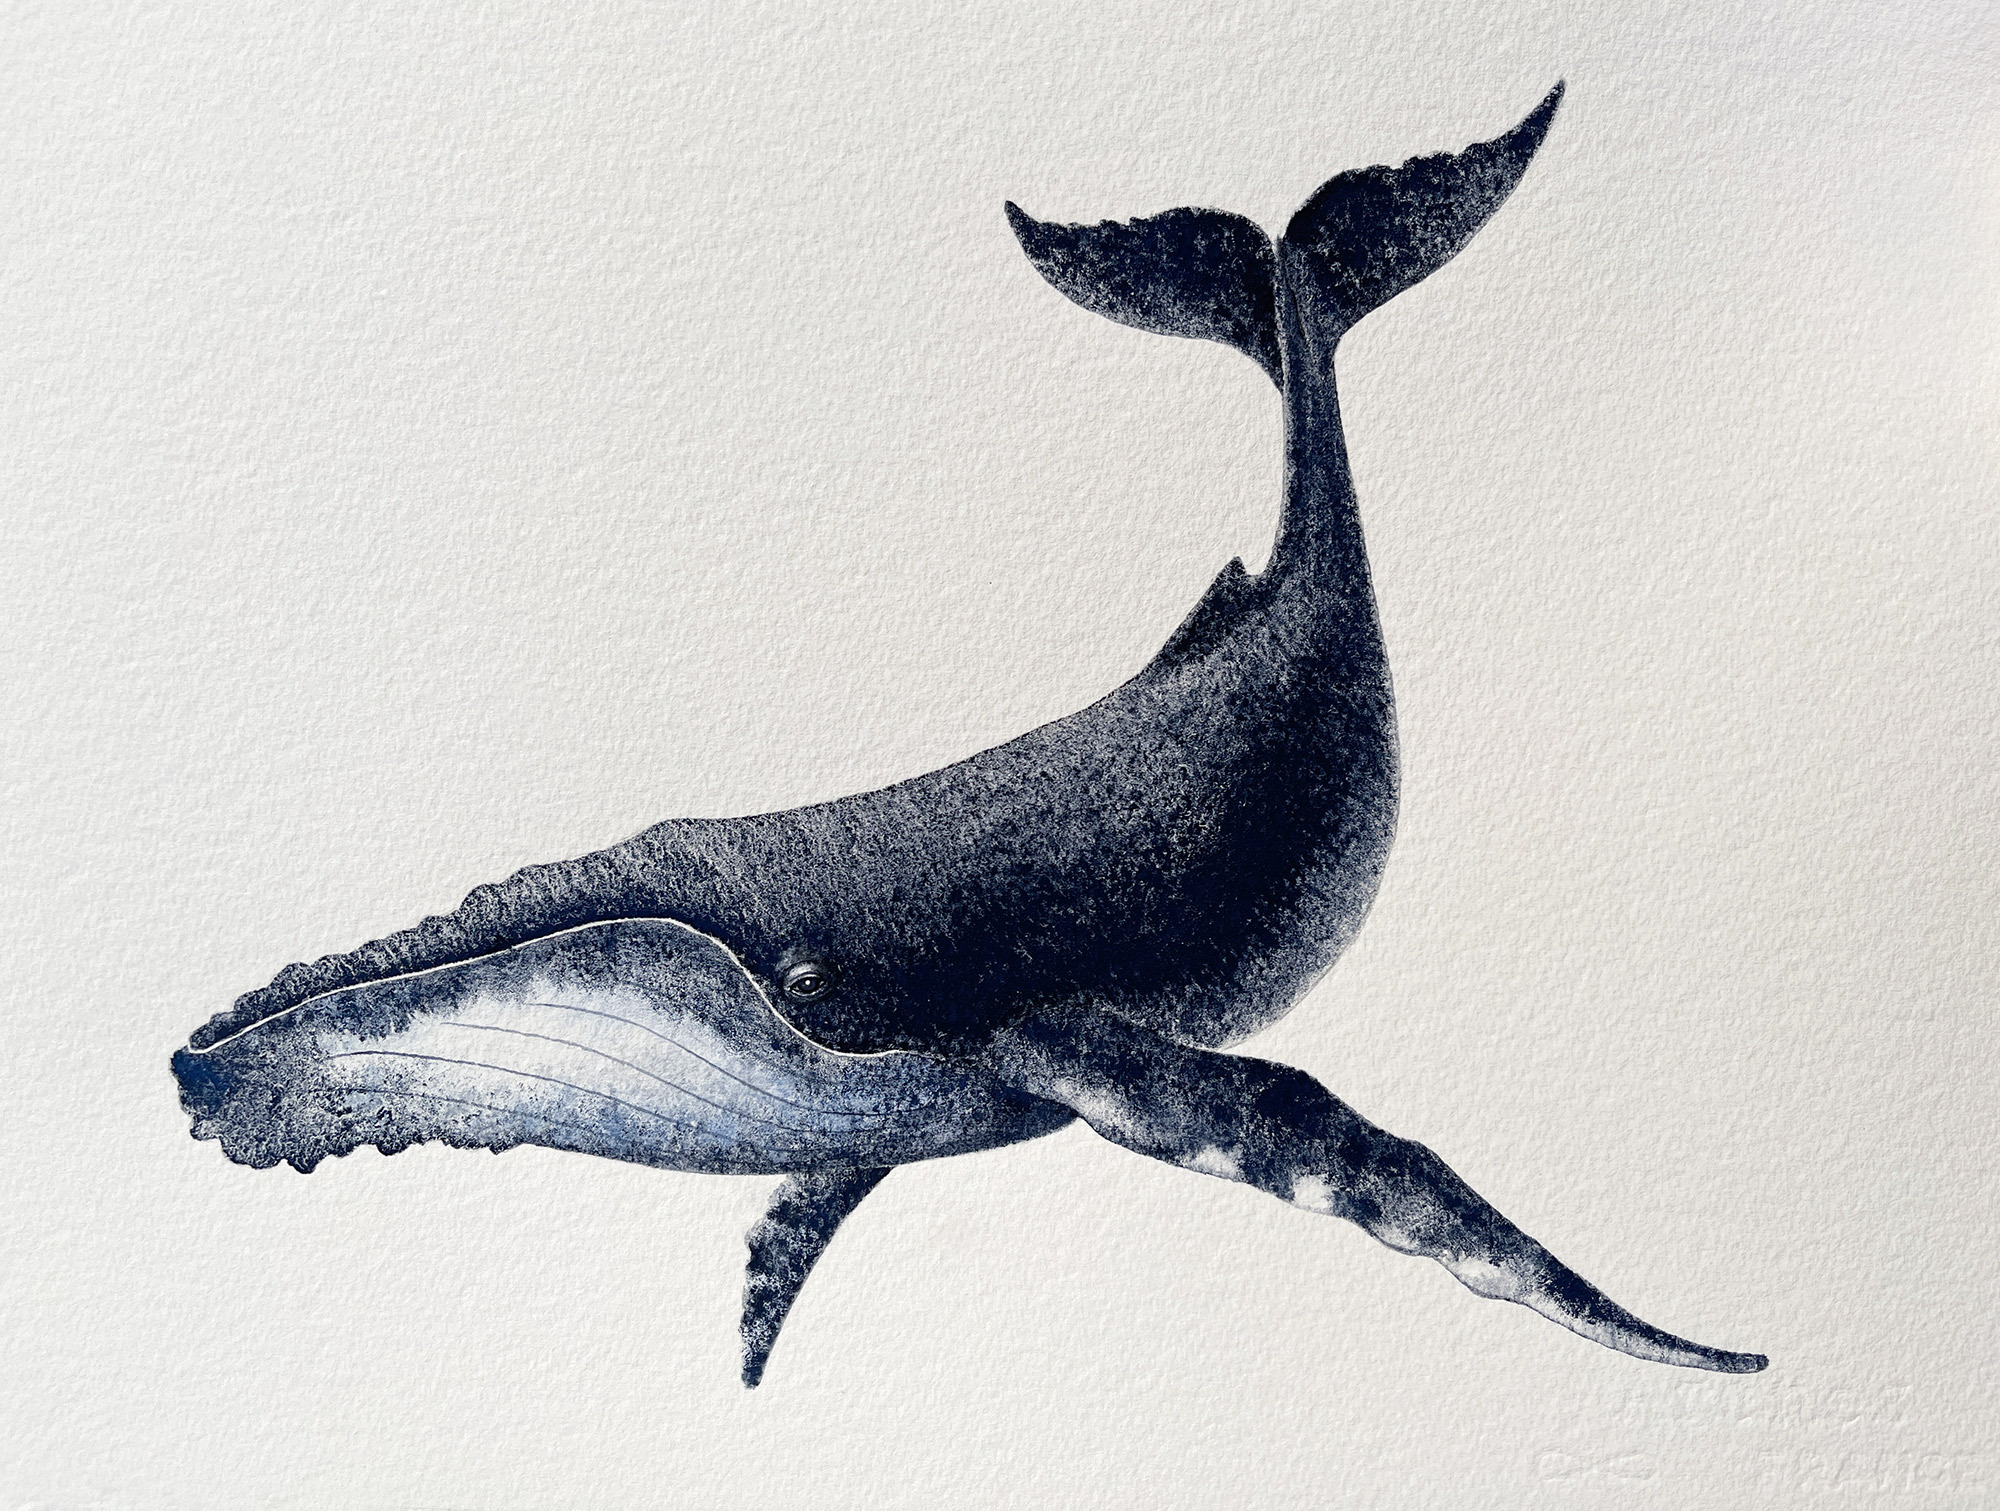 A finely detailed painting of a whale in greys and white on highly textured white watercolour paper